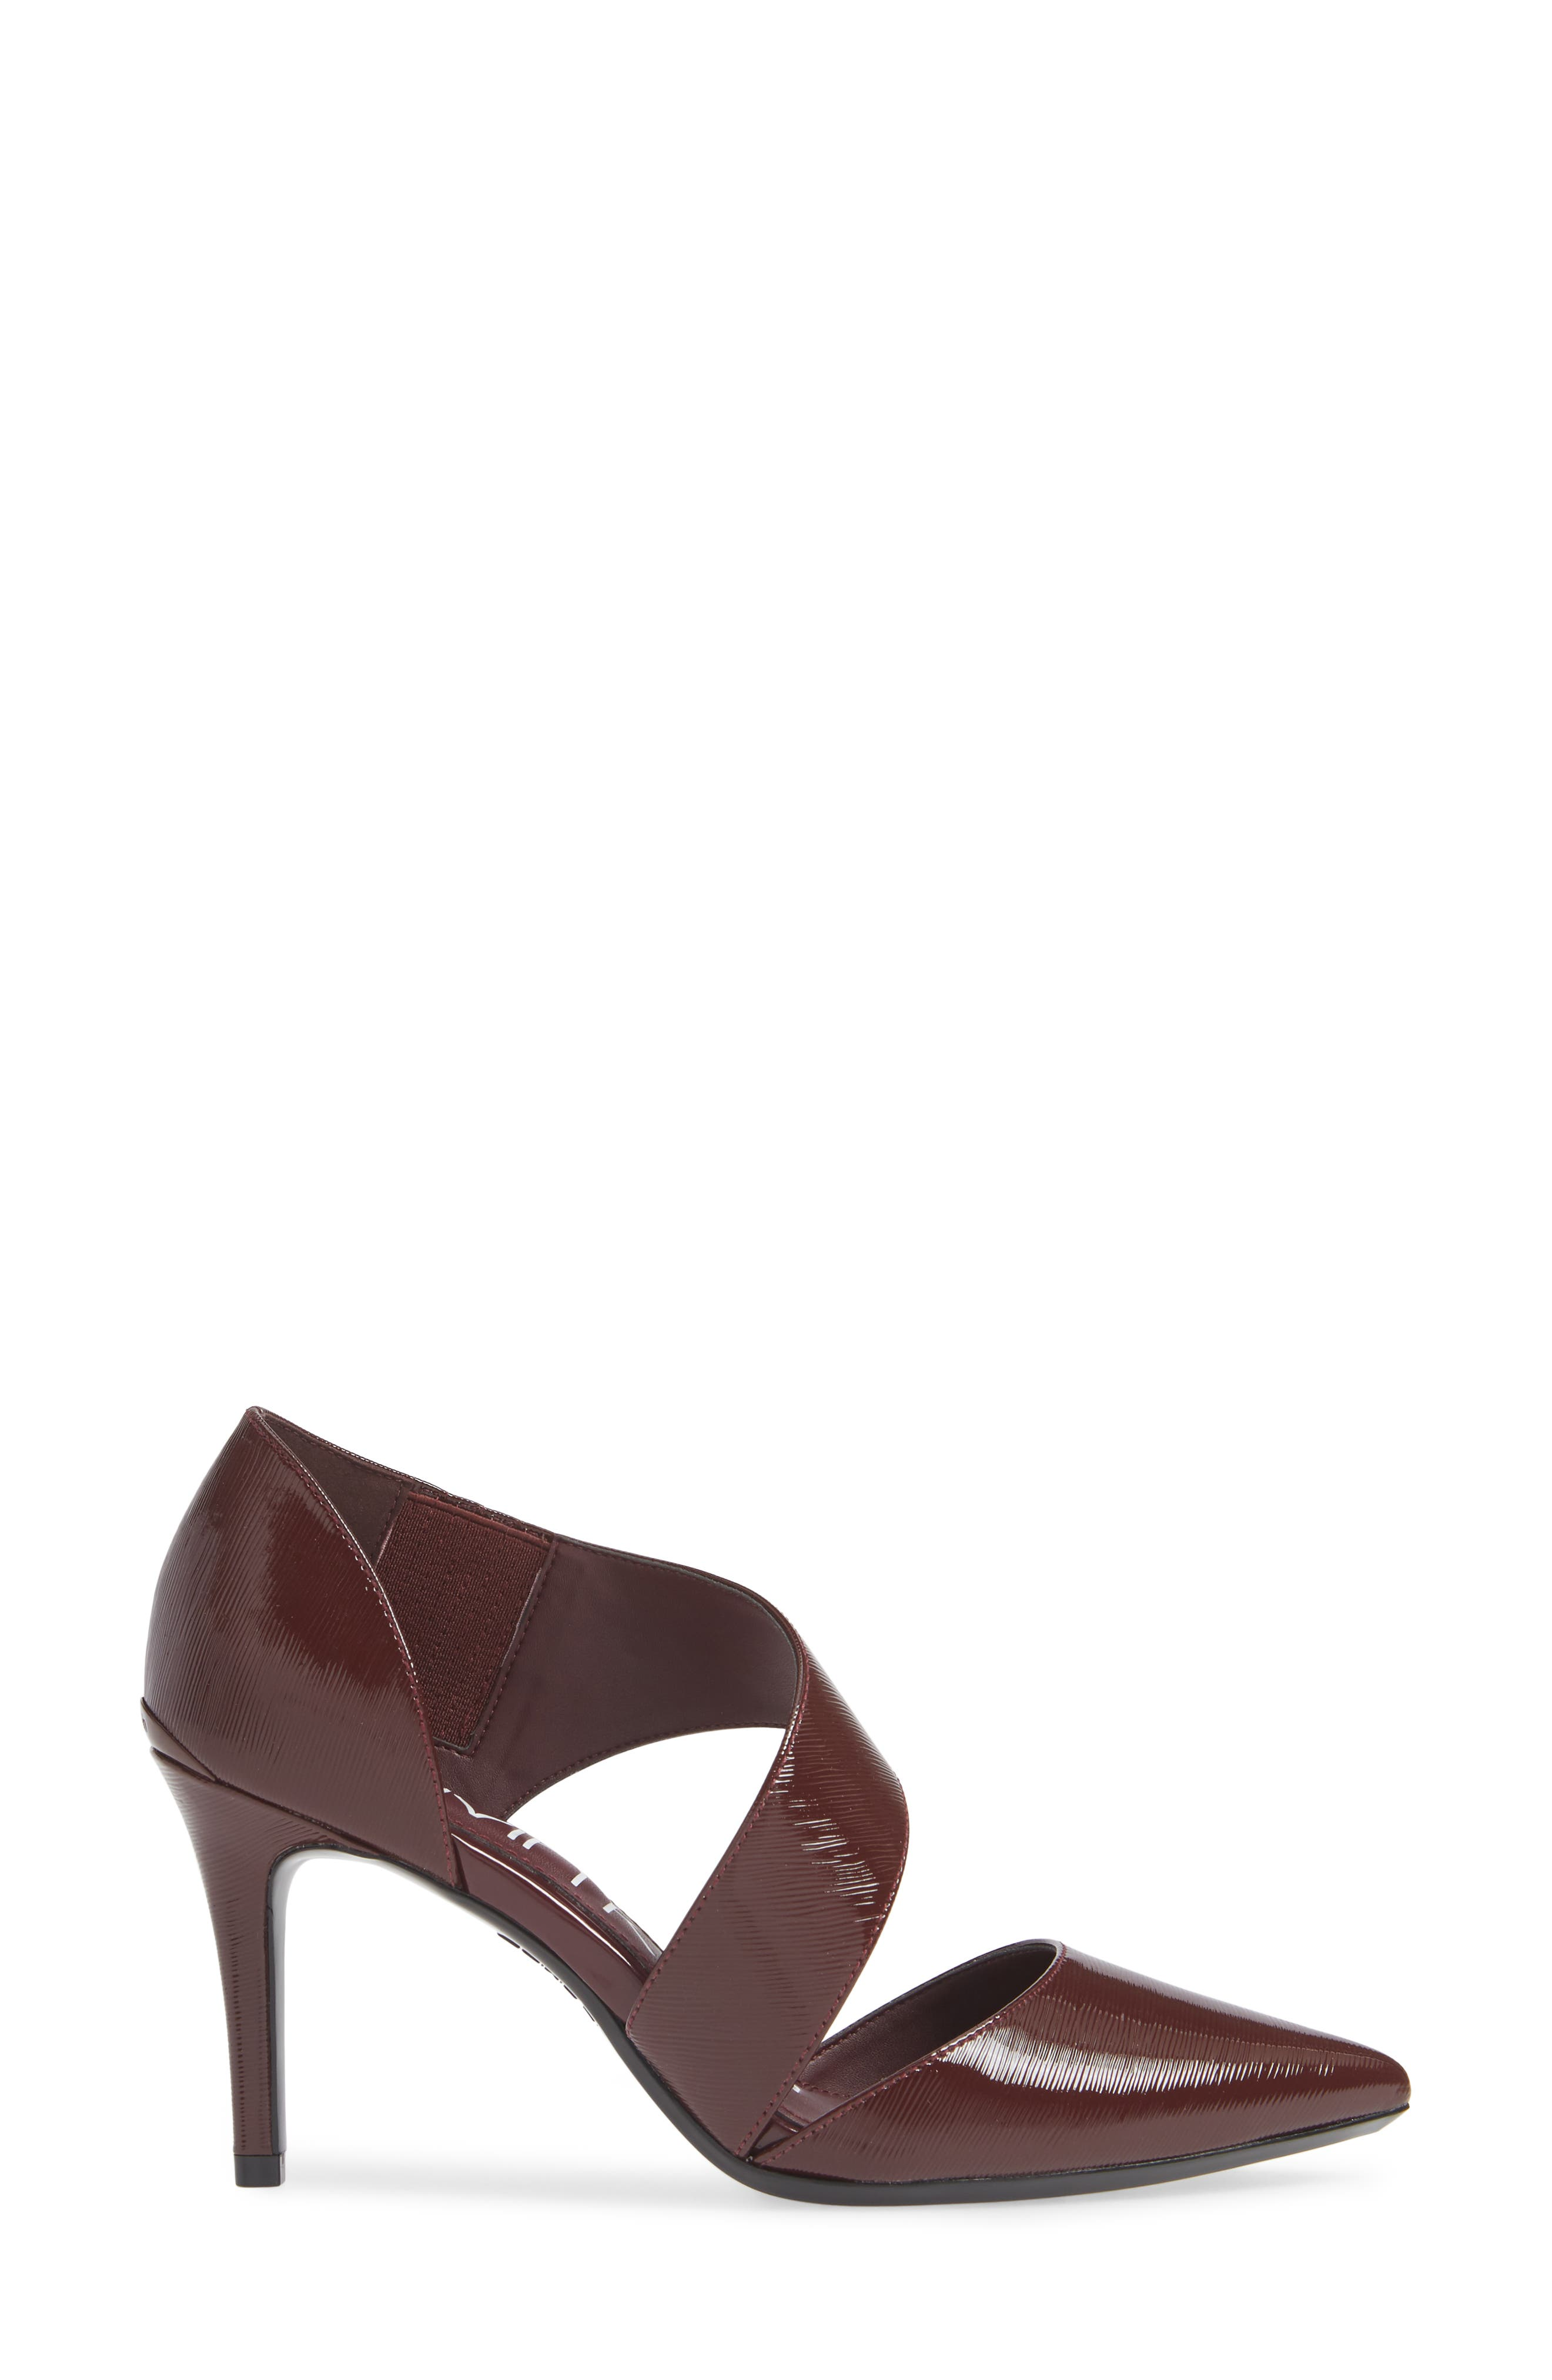 CALVIN KLEIN,                             'Gella' Pointy Toe Pump,                             Alternate thumbnail 3, color,                             AMETHYST PATENT LEATHER